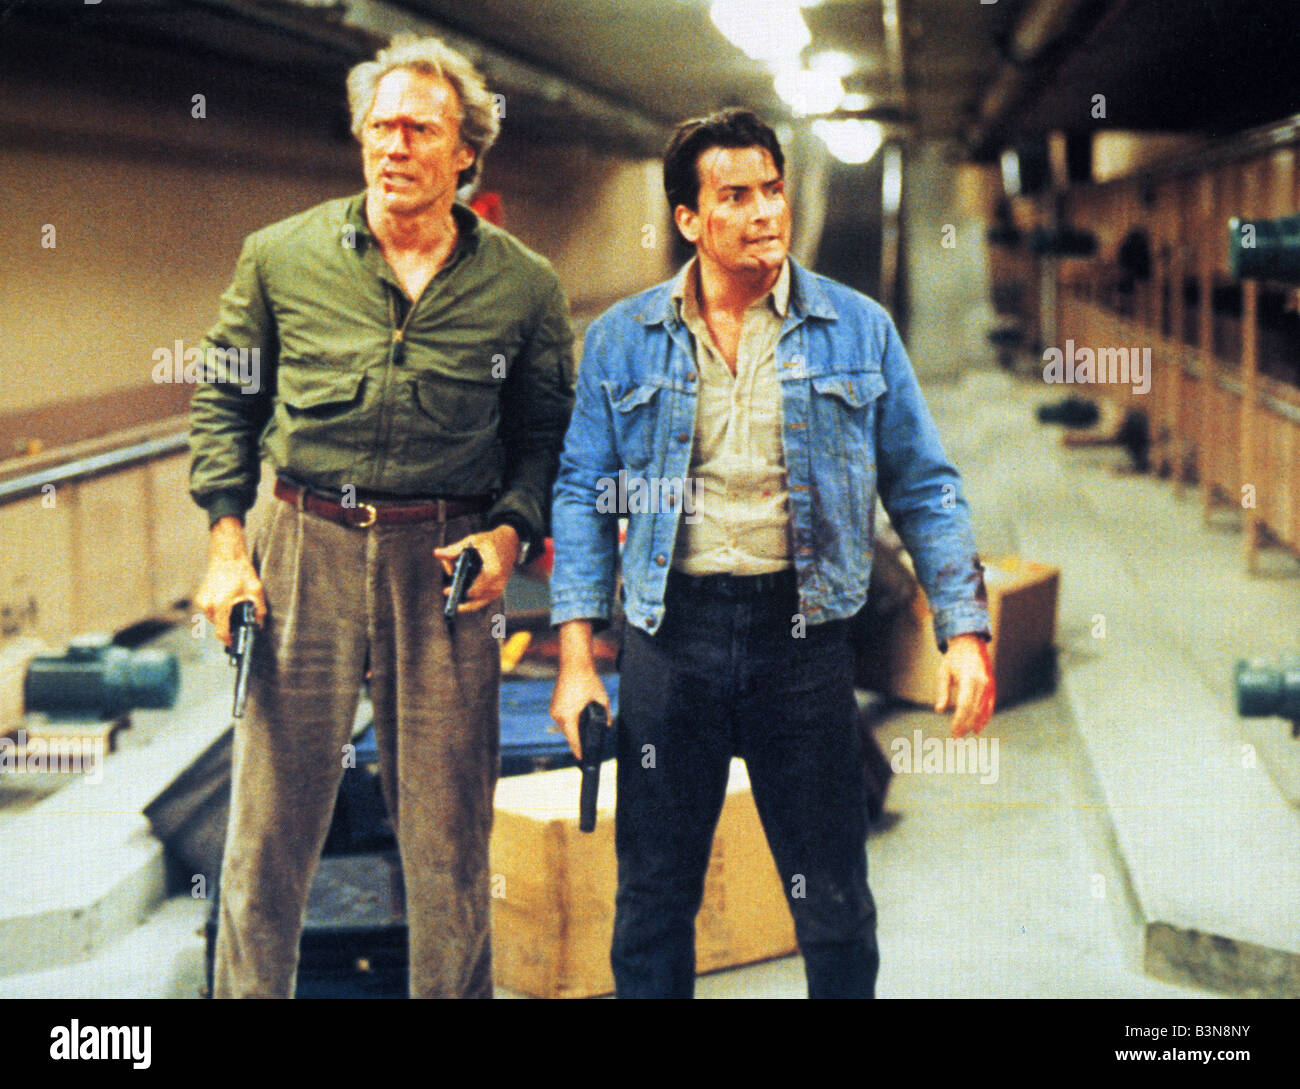 THE ROOKIE 1990 Warner/Malpaso Film With Clint Eastwood